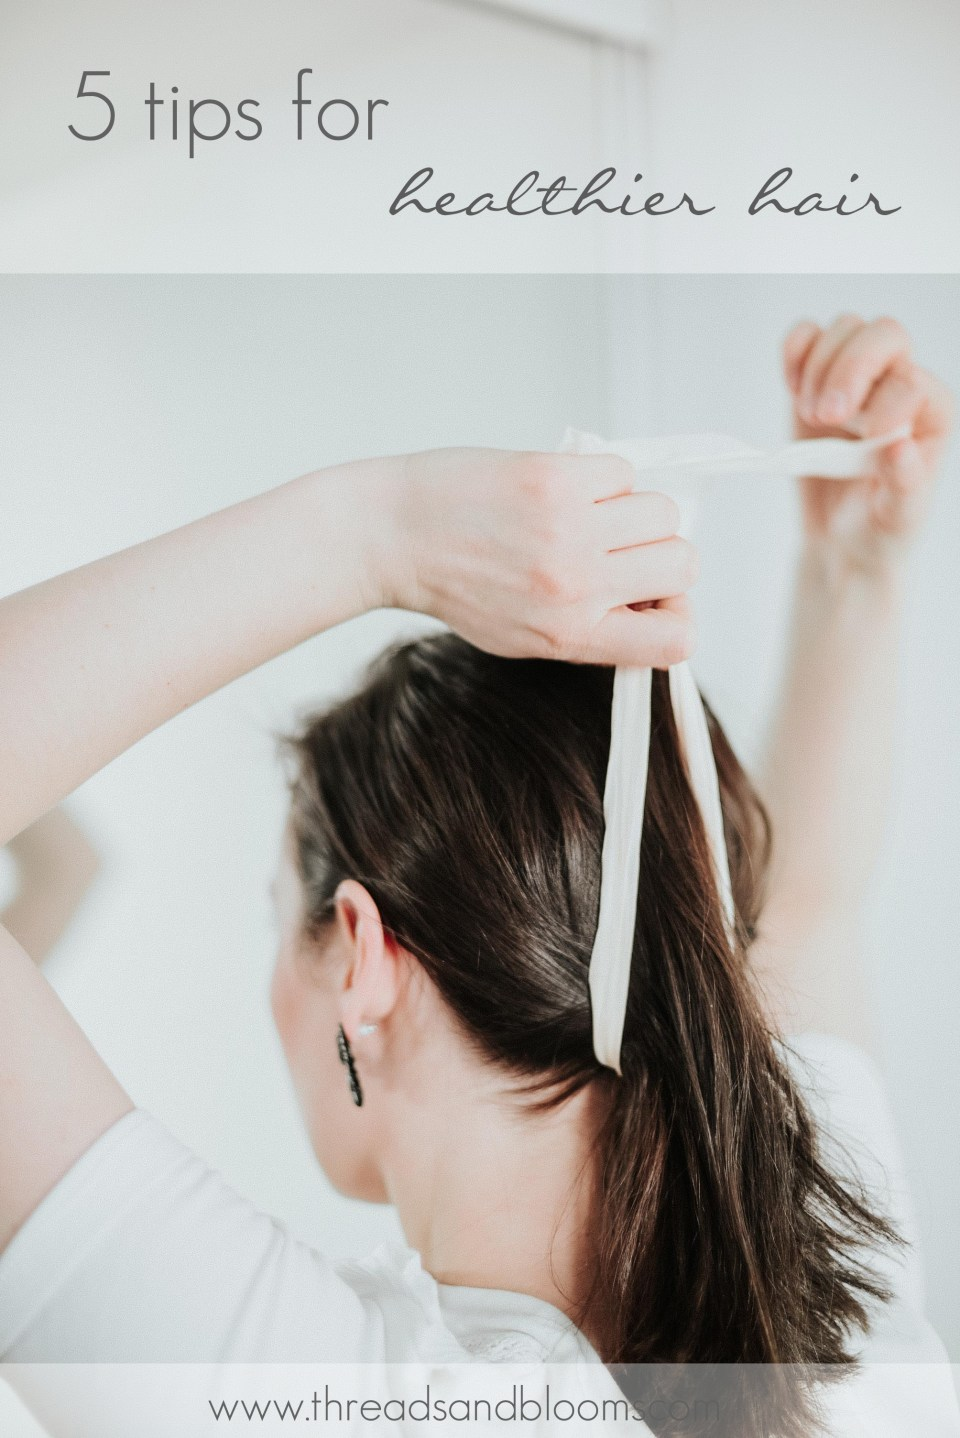 How to get healthier Hair